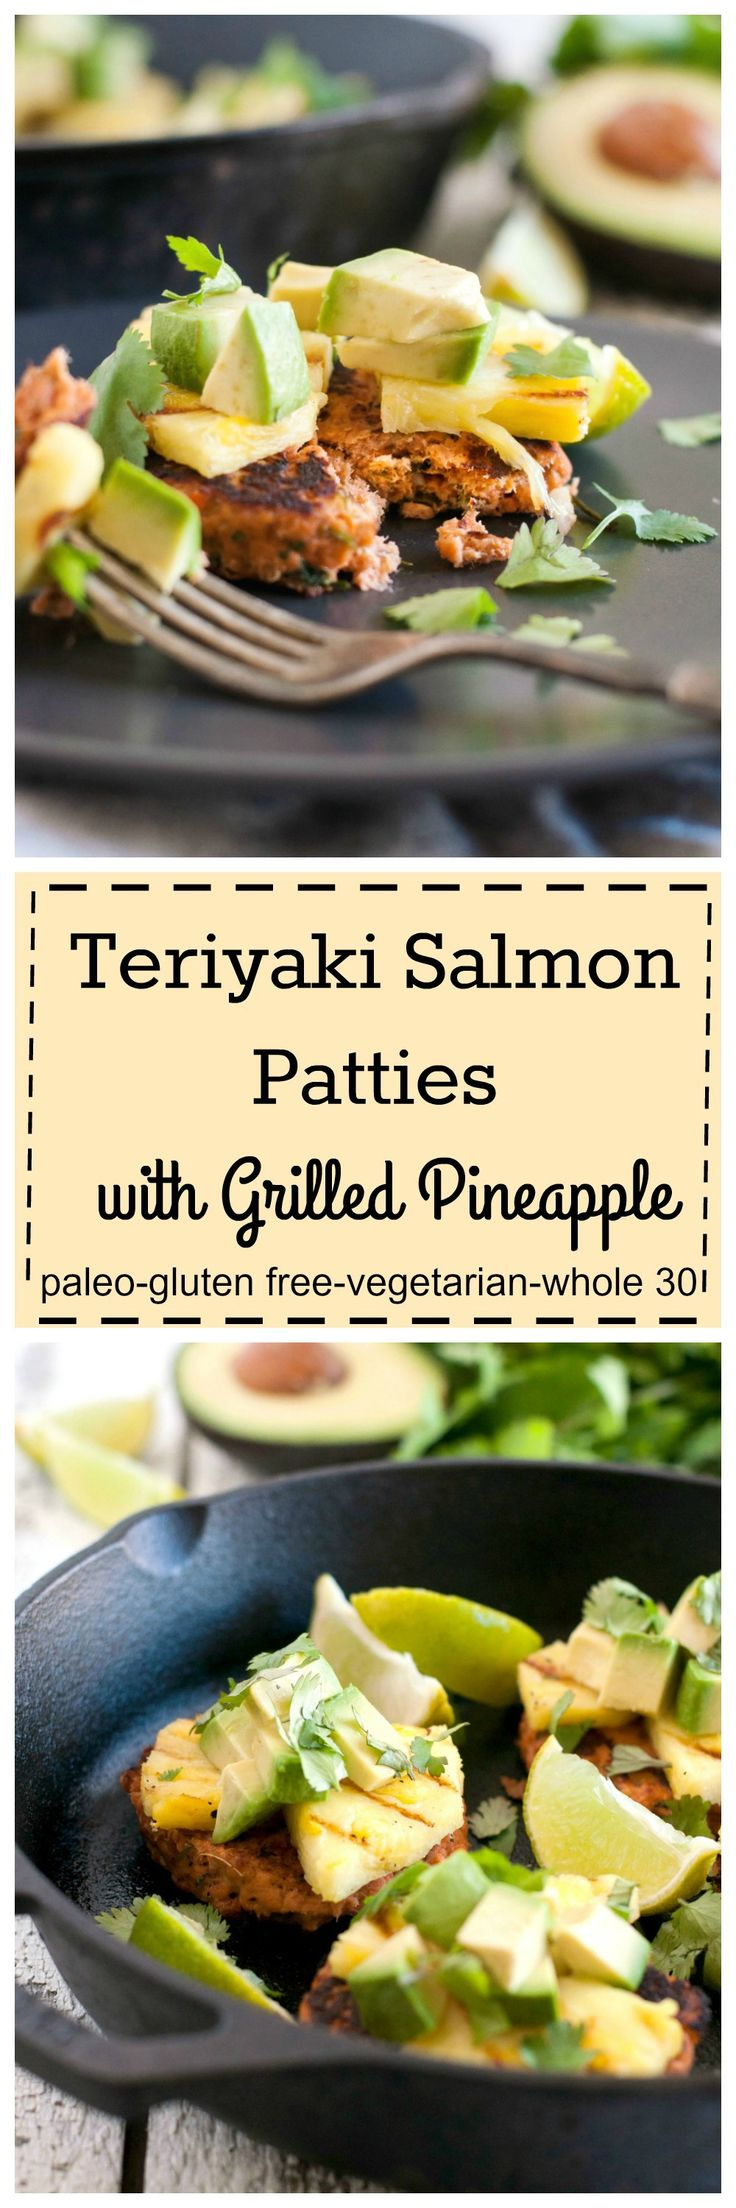 Quick and easy Teriyaki Salmon Patties with Grilled Pineapple. The flavors of teriyaki sauce baked right into the salmon. Make a batch for the freezer too.